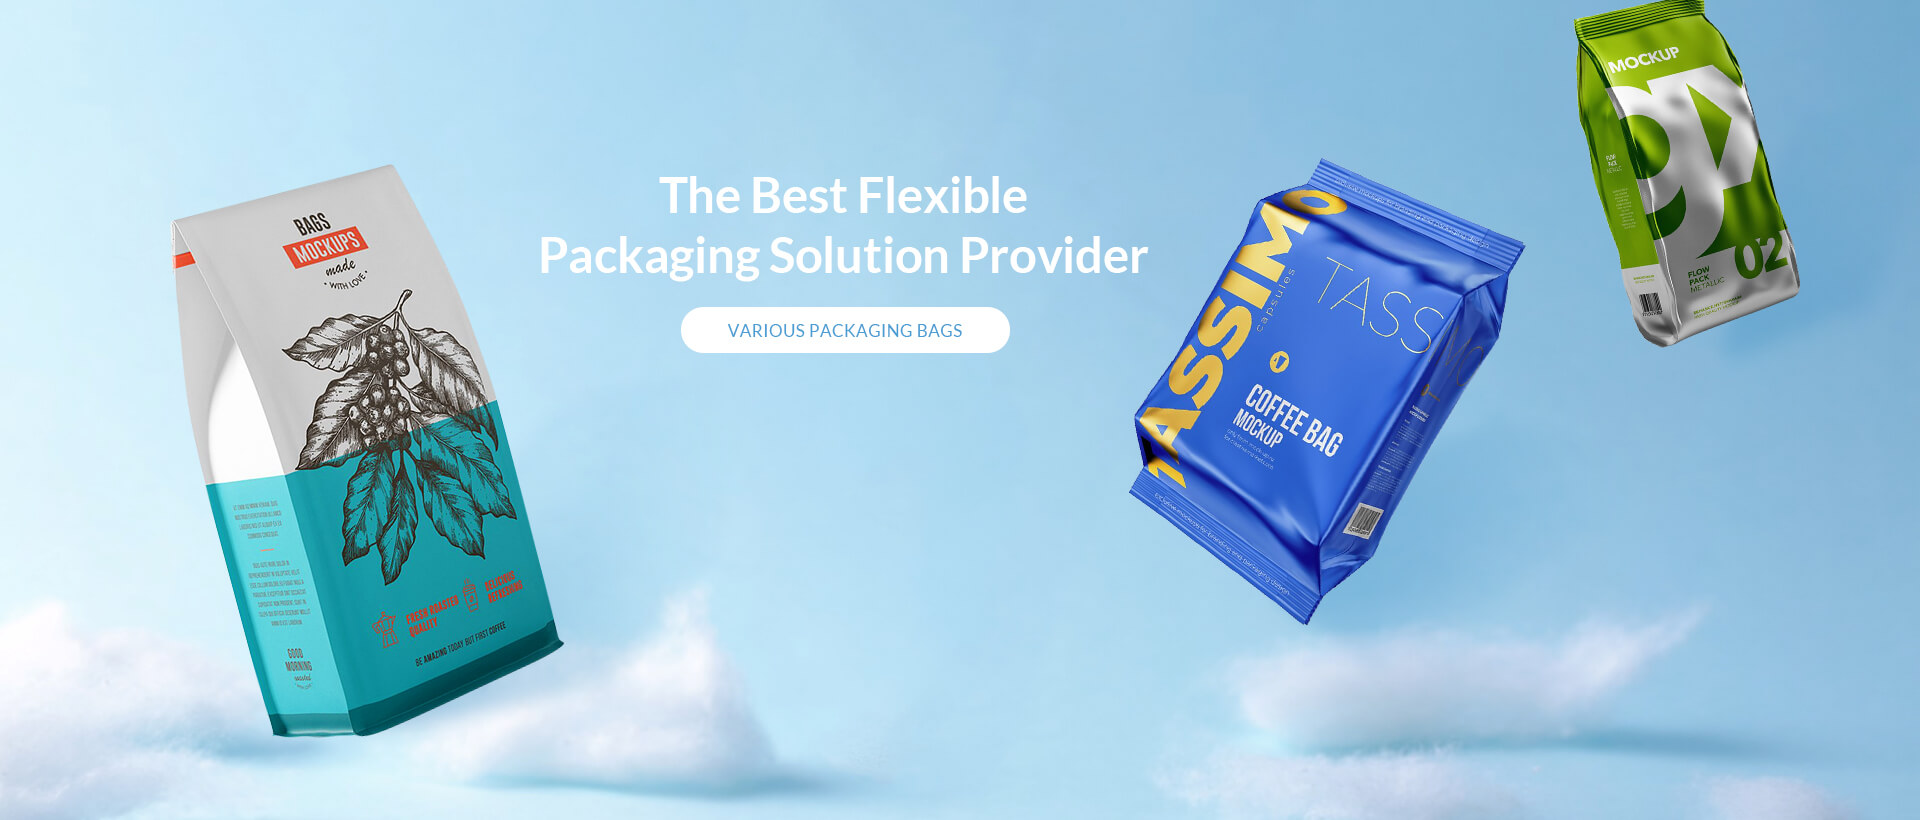 Best flexible packaging solution provider